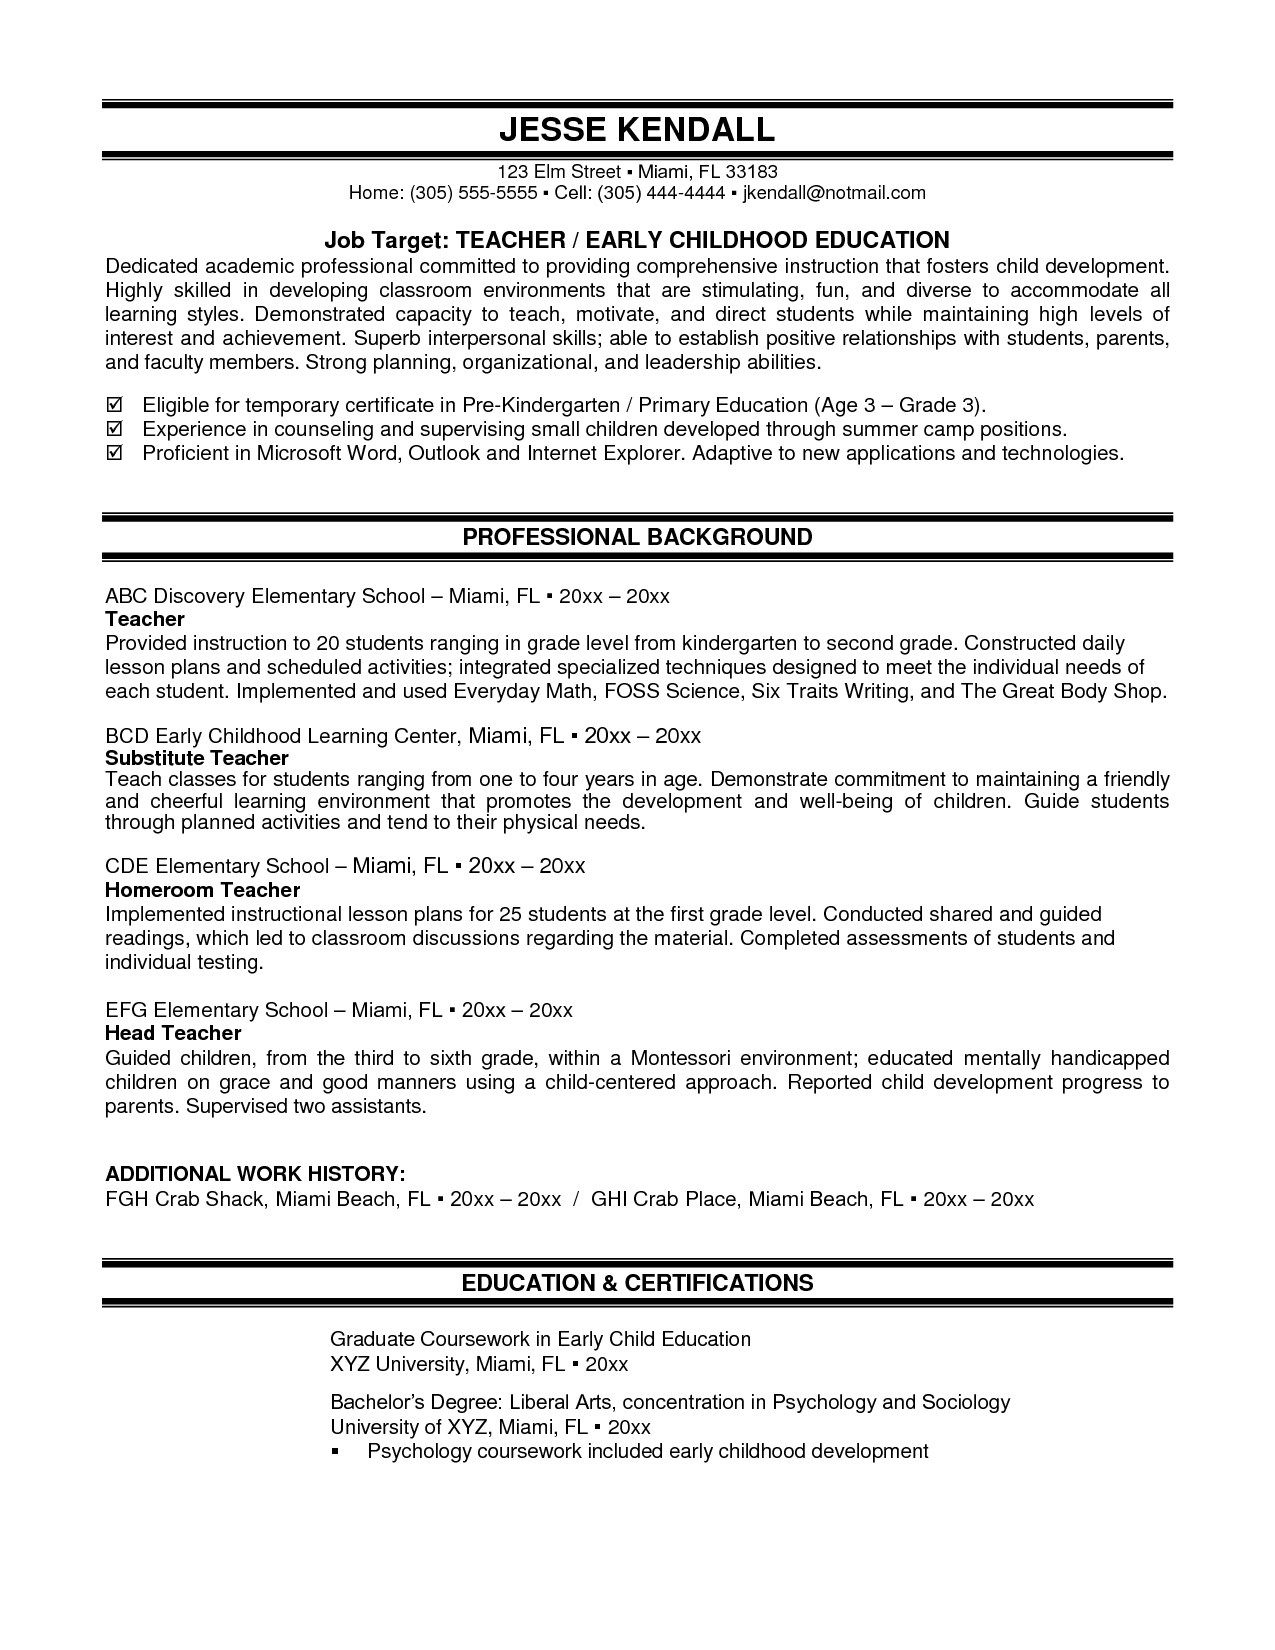 Private Music Teacher Resume Sample  HttpErsumeComPrivate